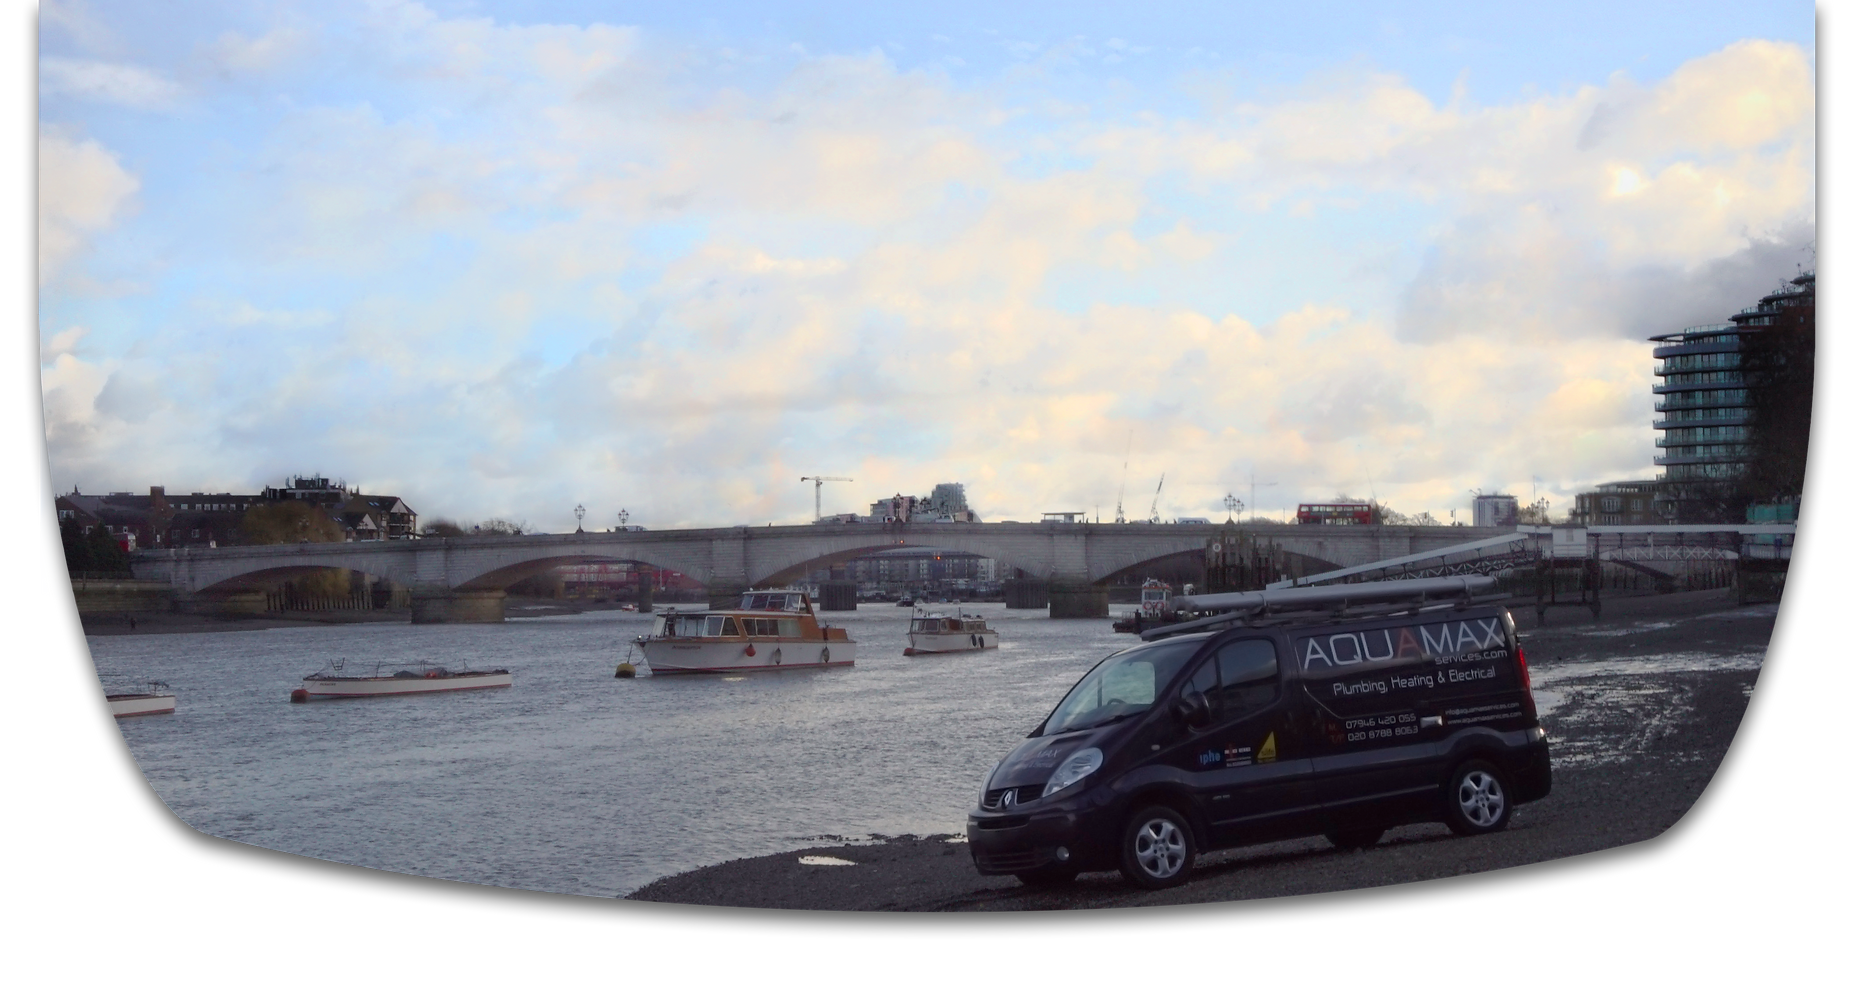 Aquamax Van by Putney Bridge